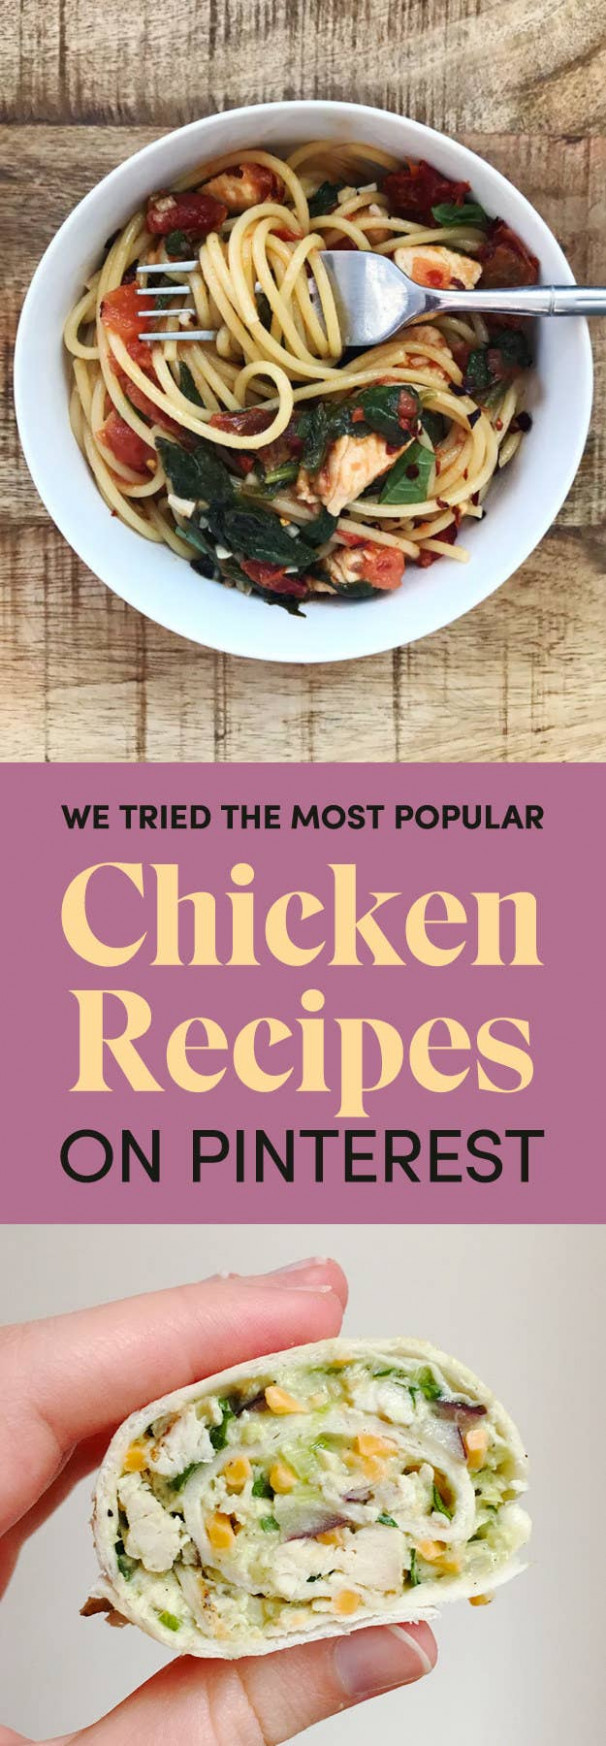 These Are The Most Popular Chicken Recipes On Pinterest - Chicken Recipes Pinterest